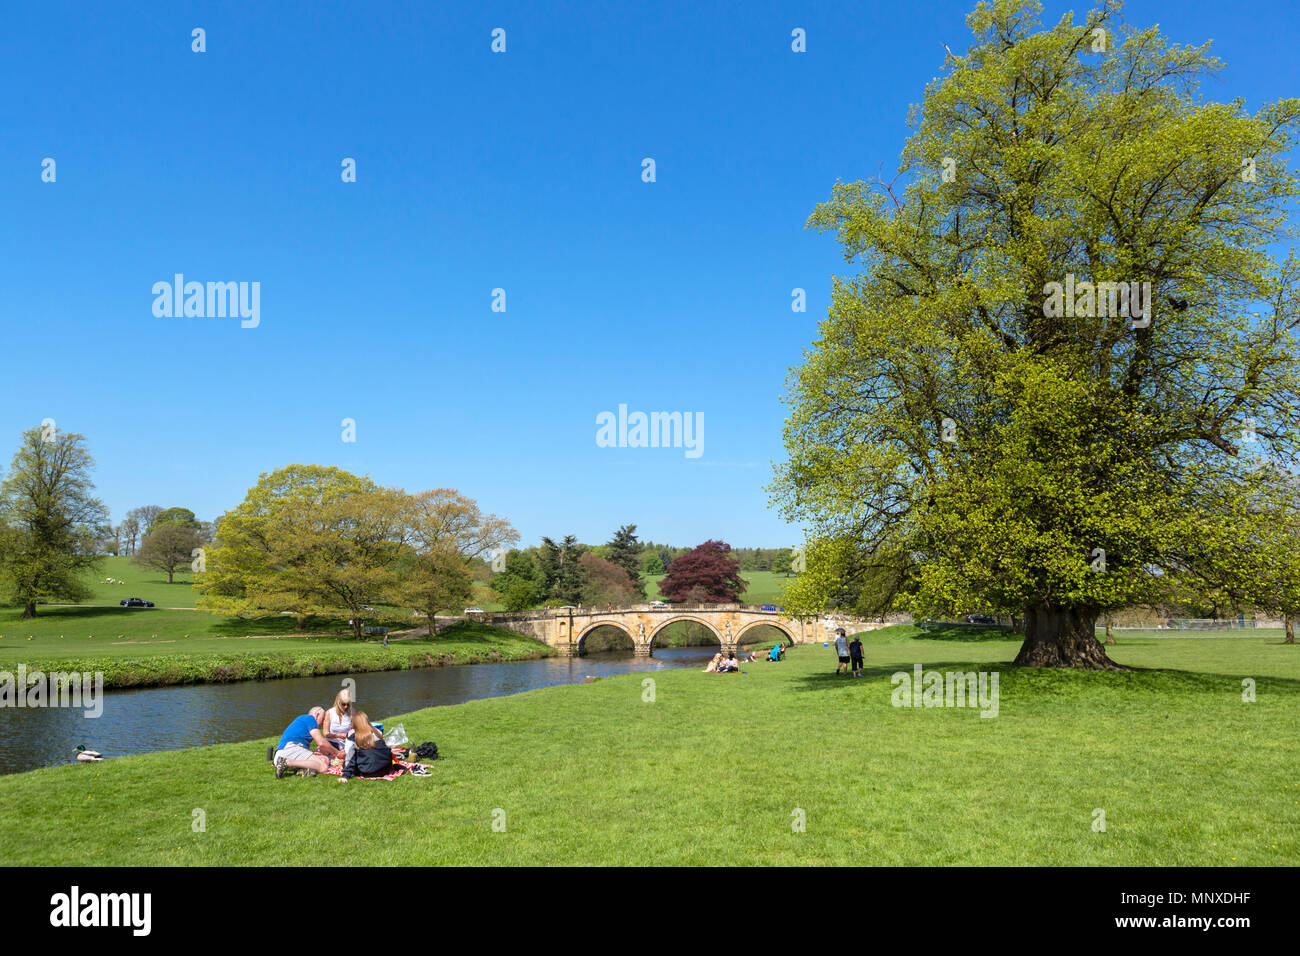 Family picnicking on the banks of the River Derwent in Chatsworth Park, Derbyshire, England, UK - Stock Image